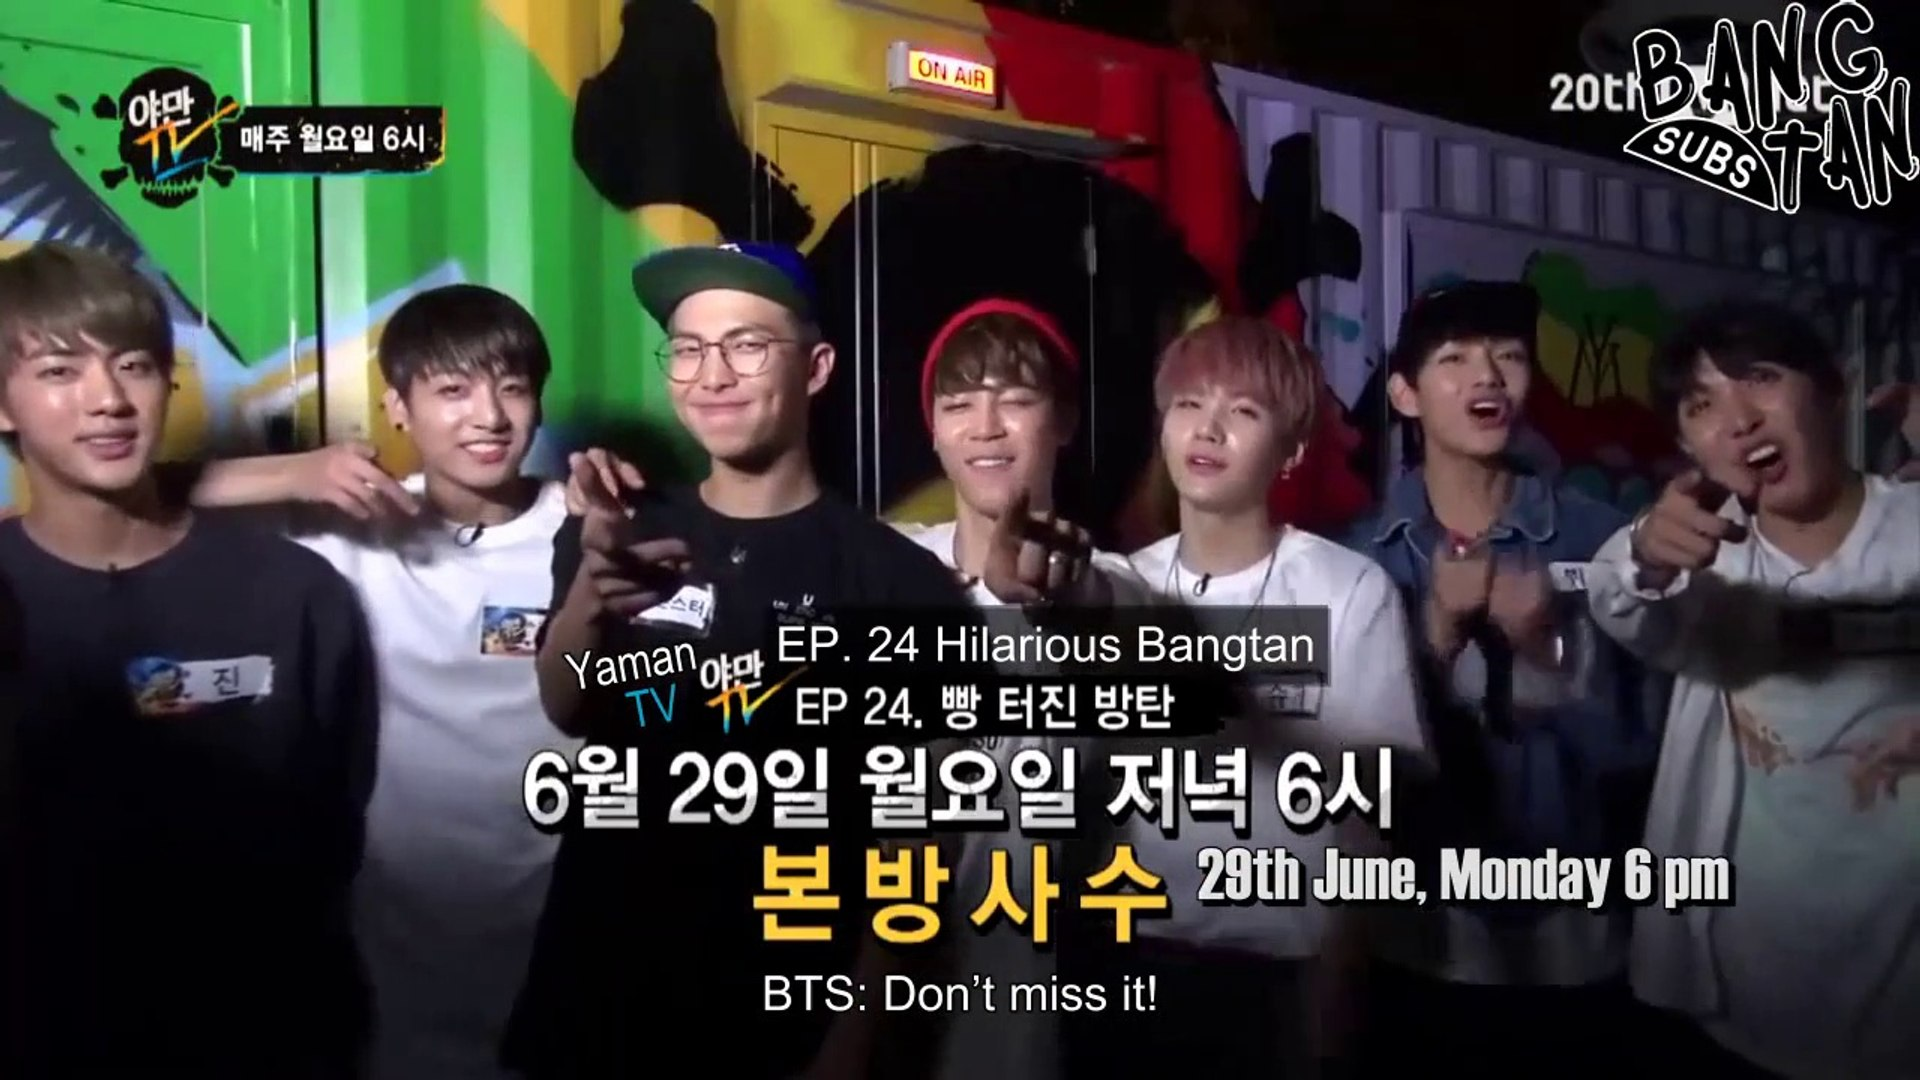 [ENG] 150624 Yaman TV - Episode 24 Preview: The one and only BTS' life entertainment! Bangtan in Yam